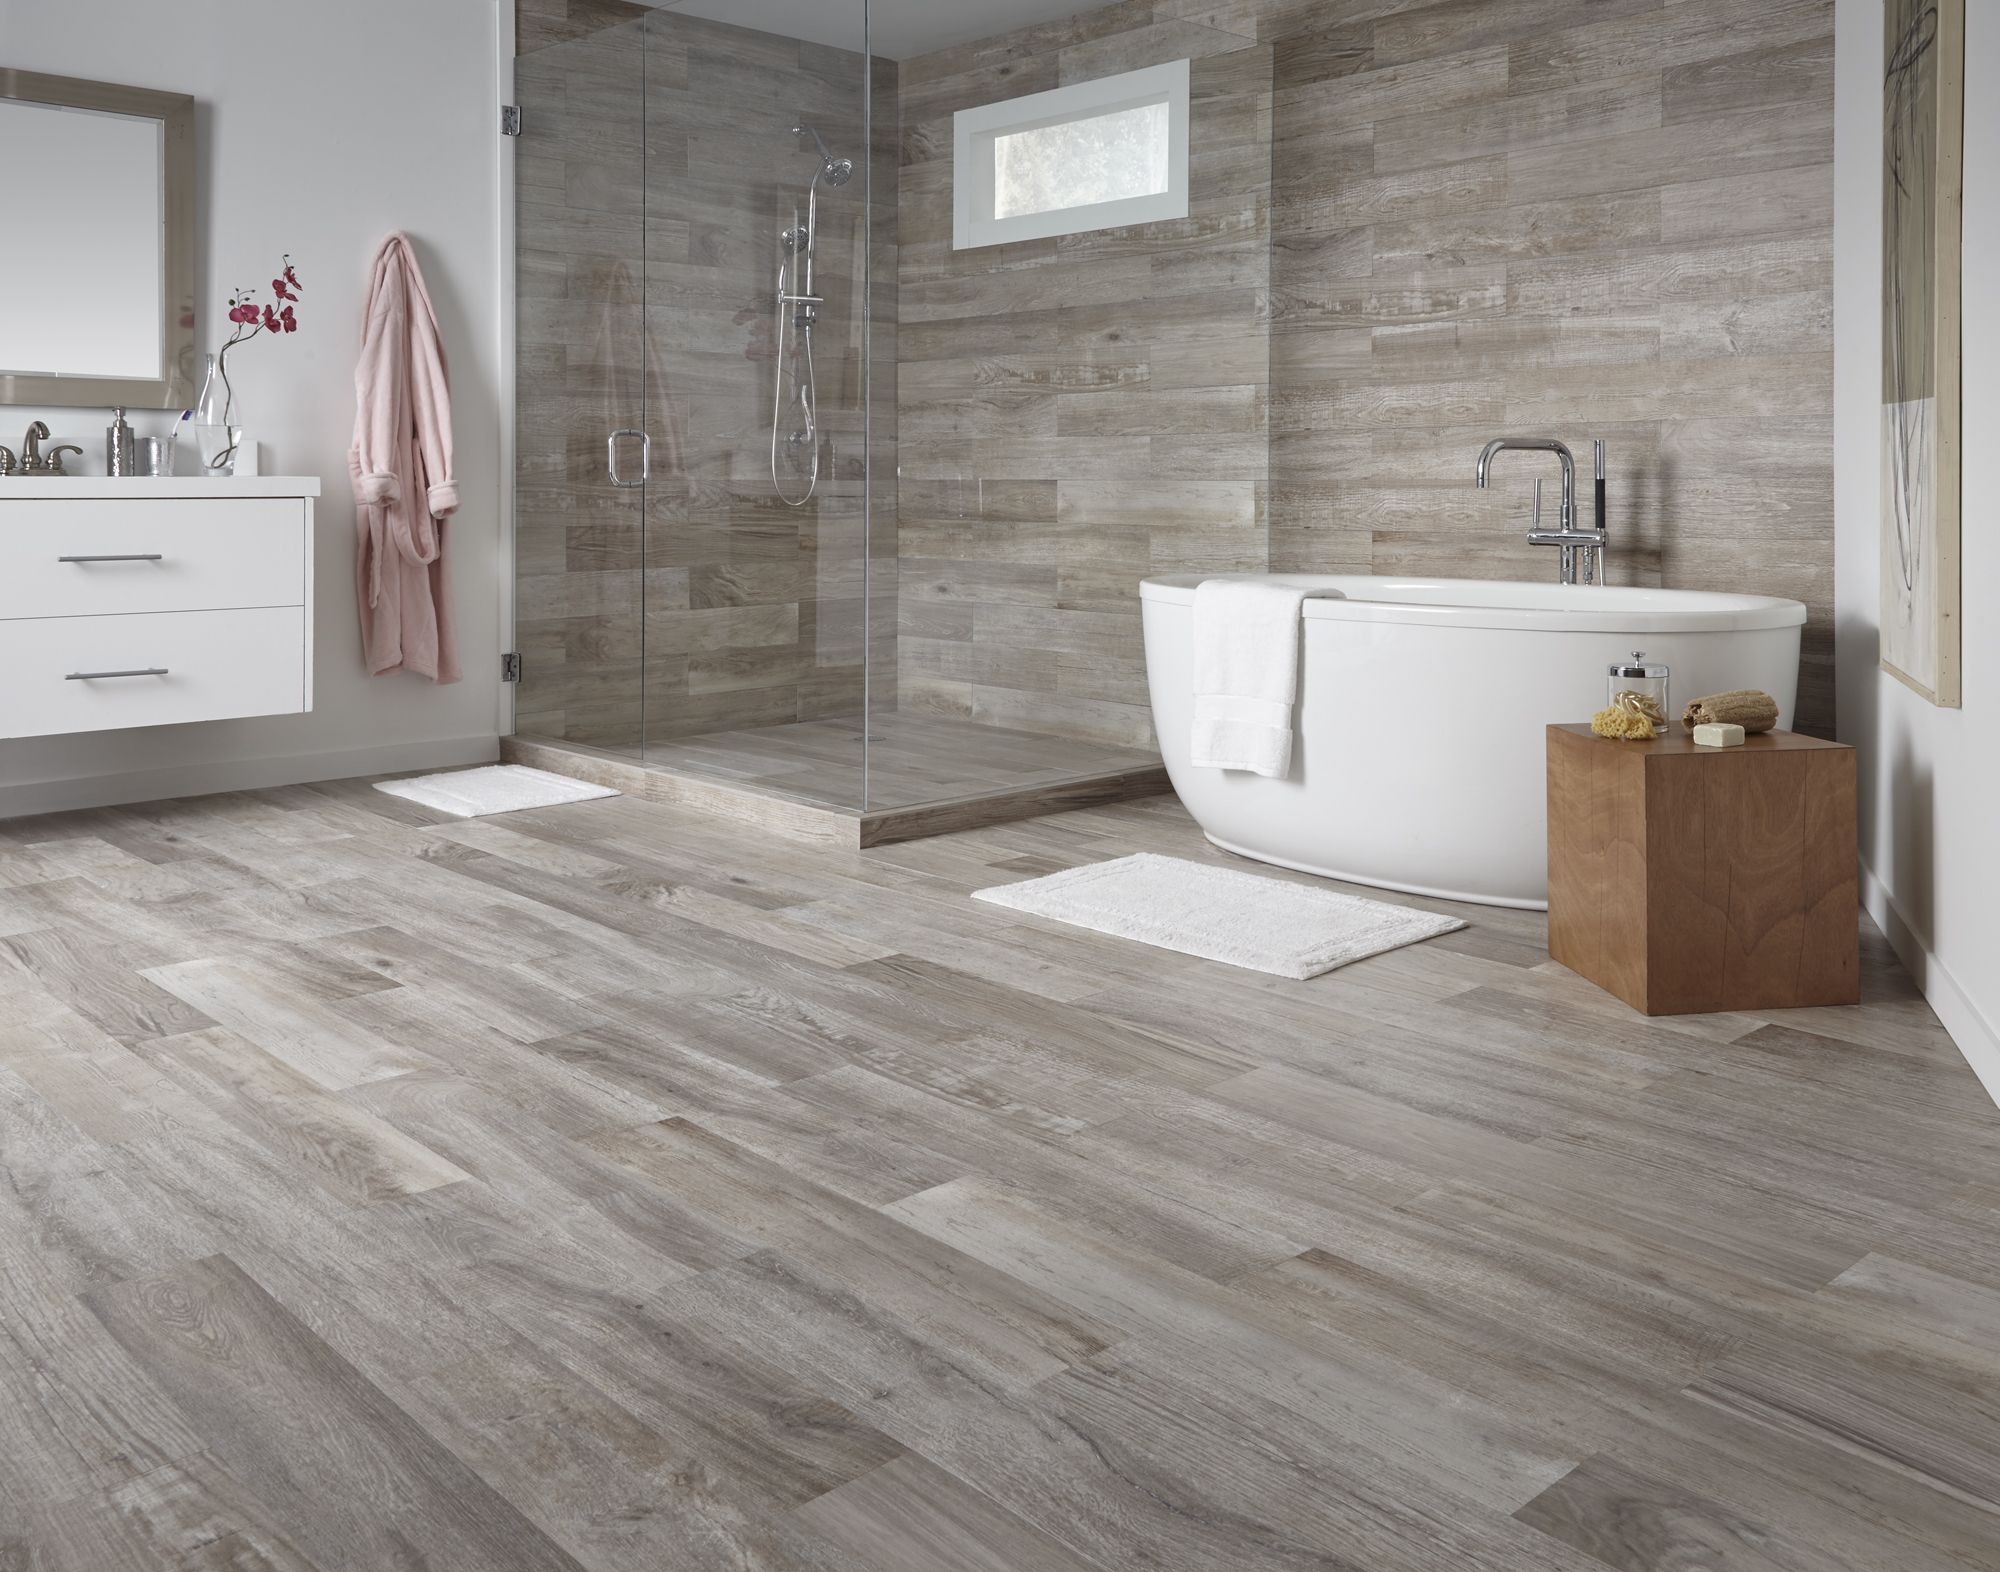 Farina Bay Oak Waterproof WoodLook Tile! Floors Wood